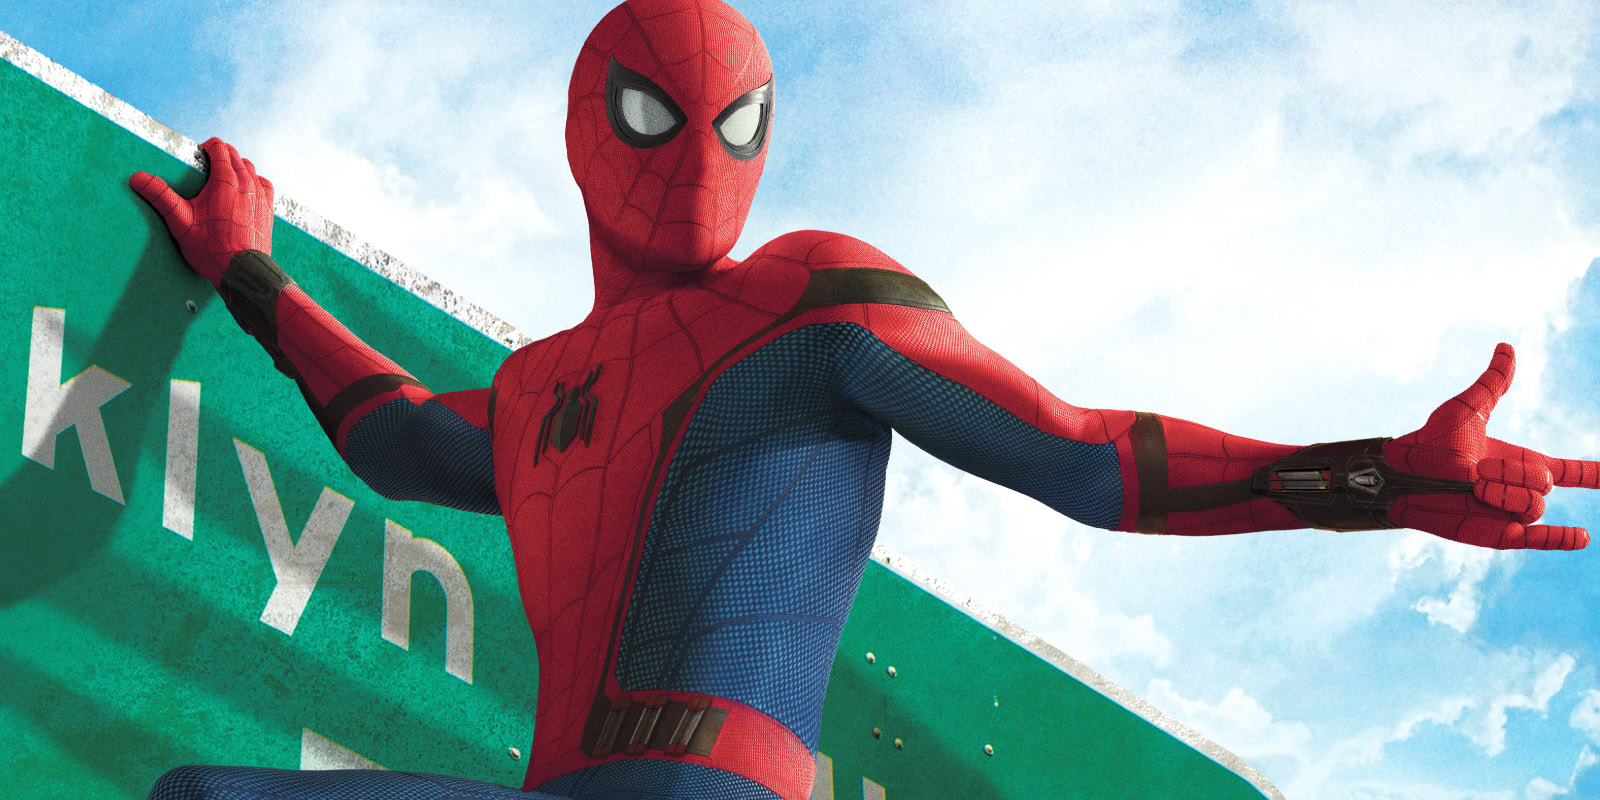 Spider-Man: Homecoming Projected for $135 Million Box Office Opening